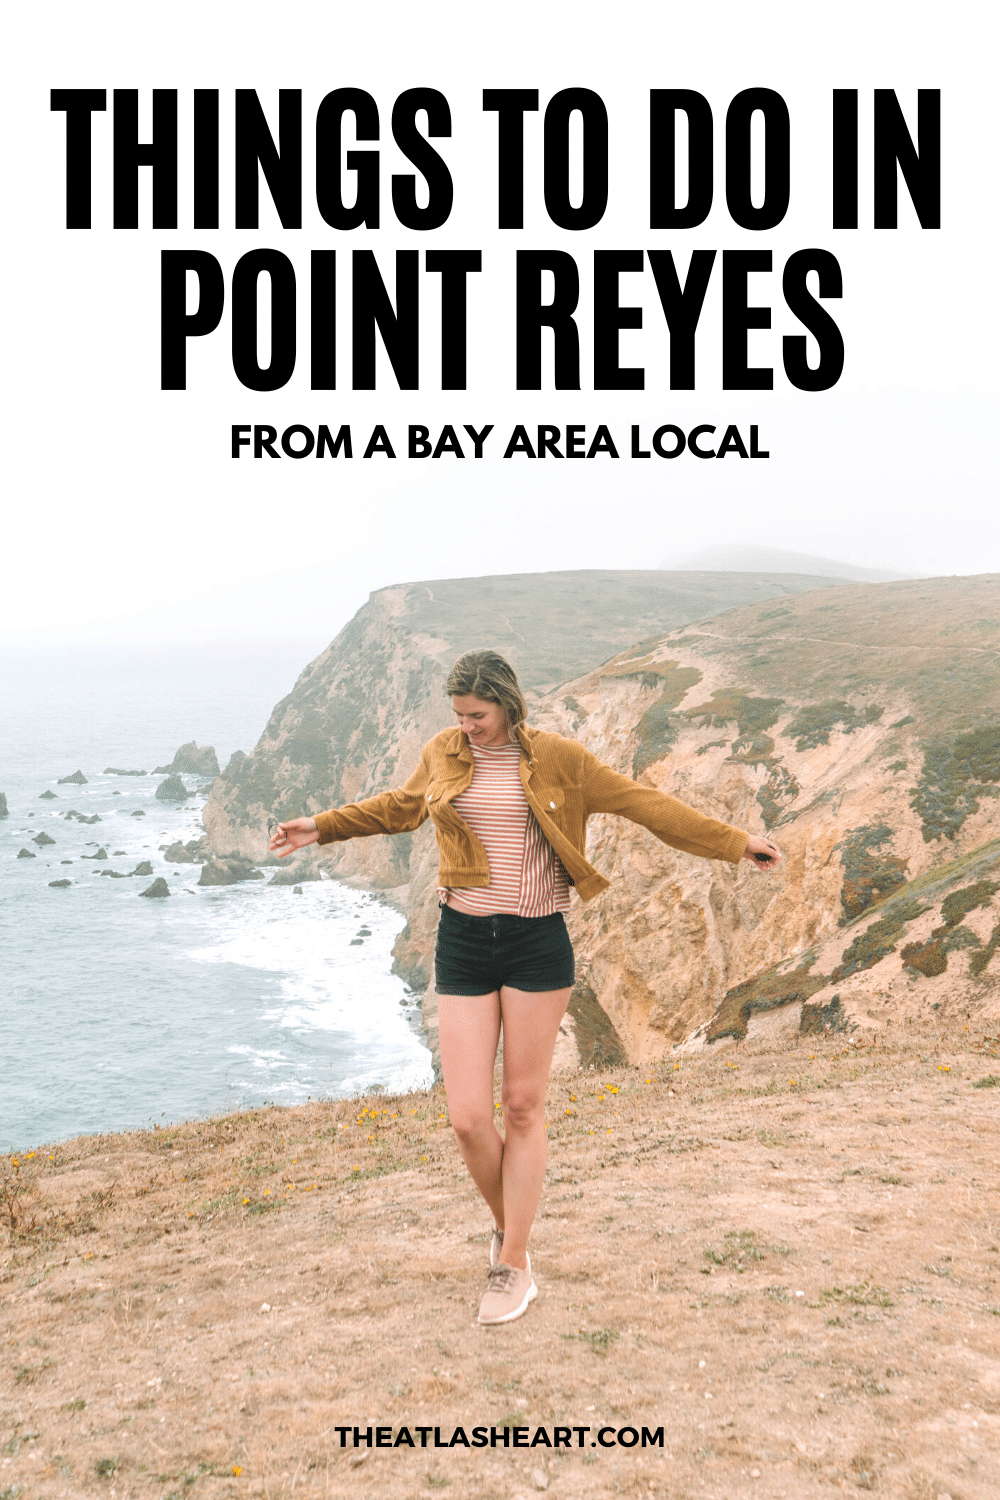 15 Things to do in Point Reyes (From a Bay Area Local)